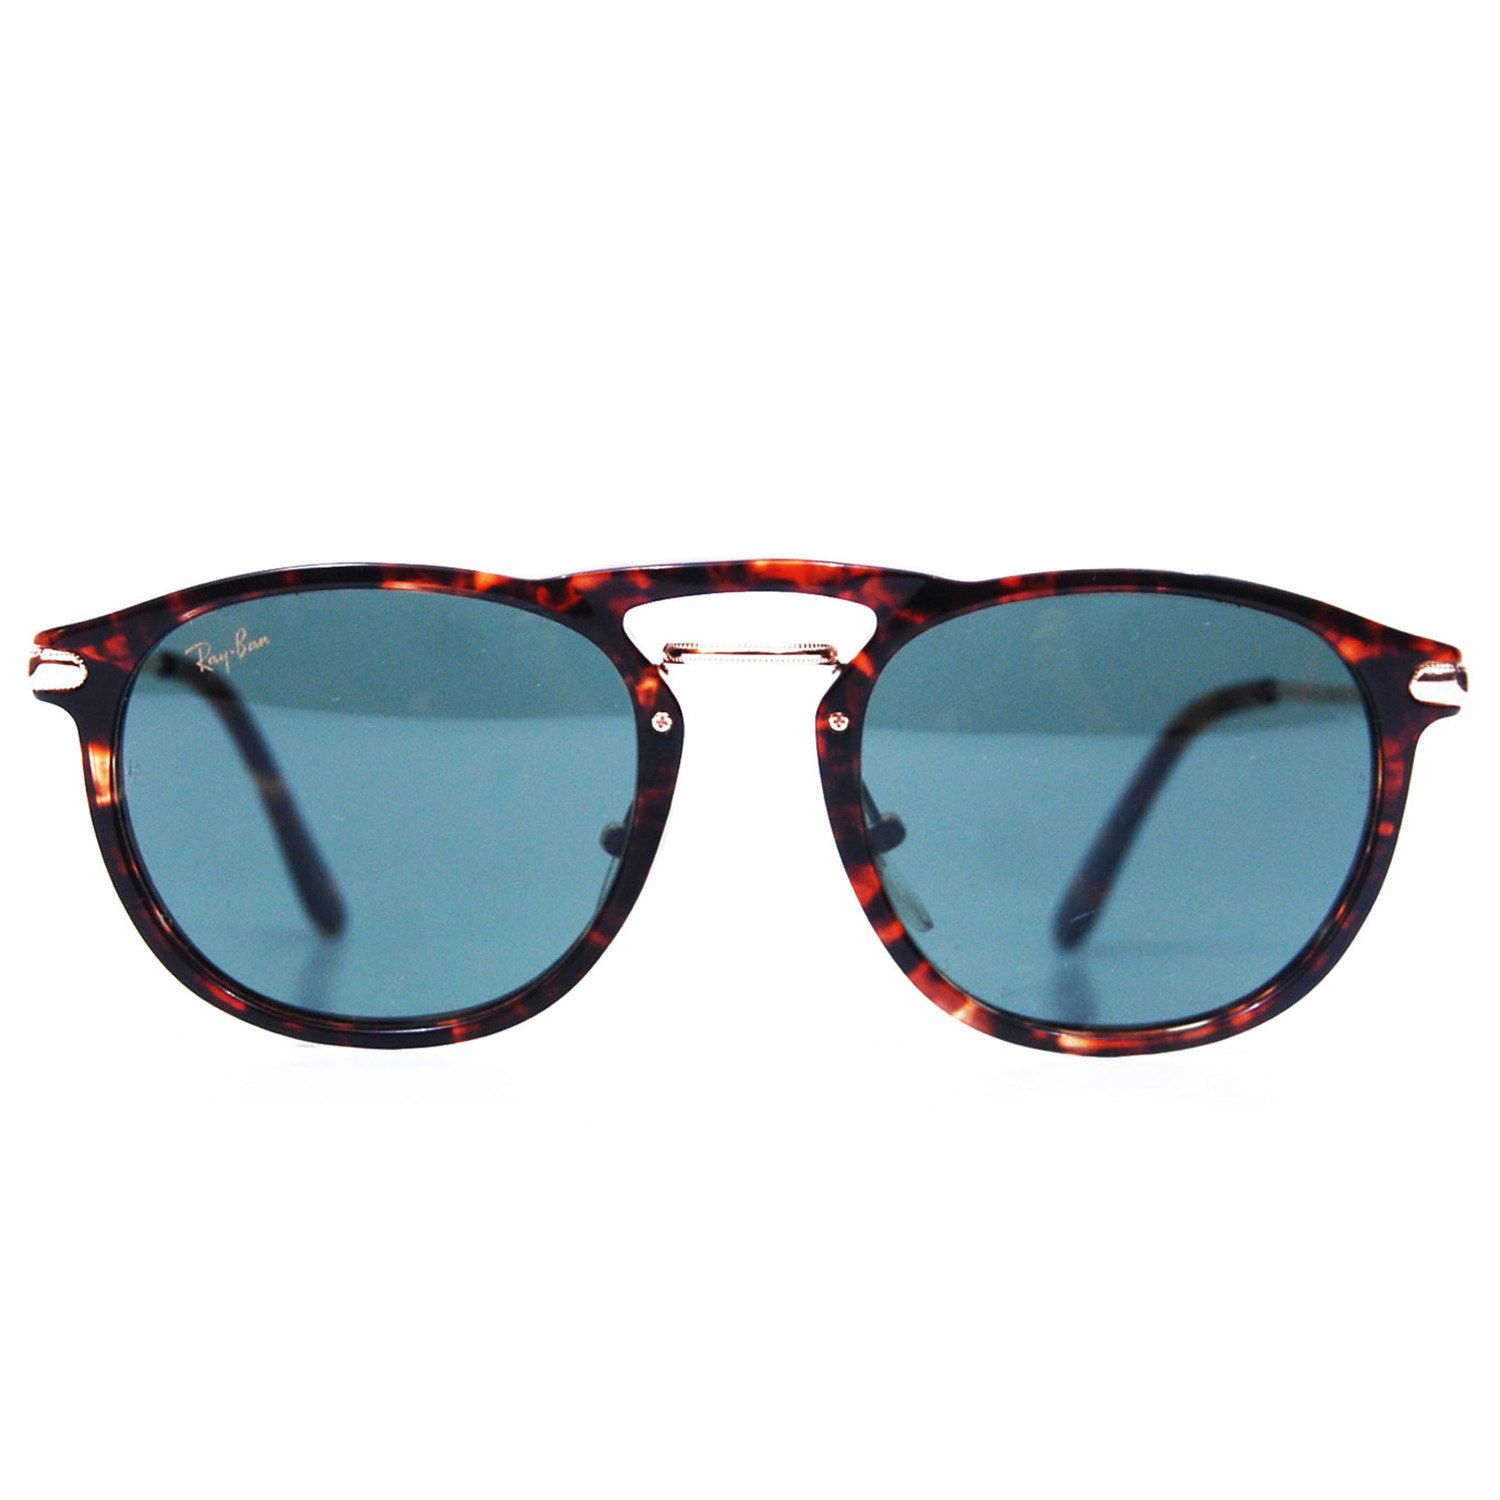 Vintage Traditionals Ray Shell SunglassesB Ban Premier Tortoise Rj34LSc5Aq